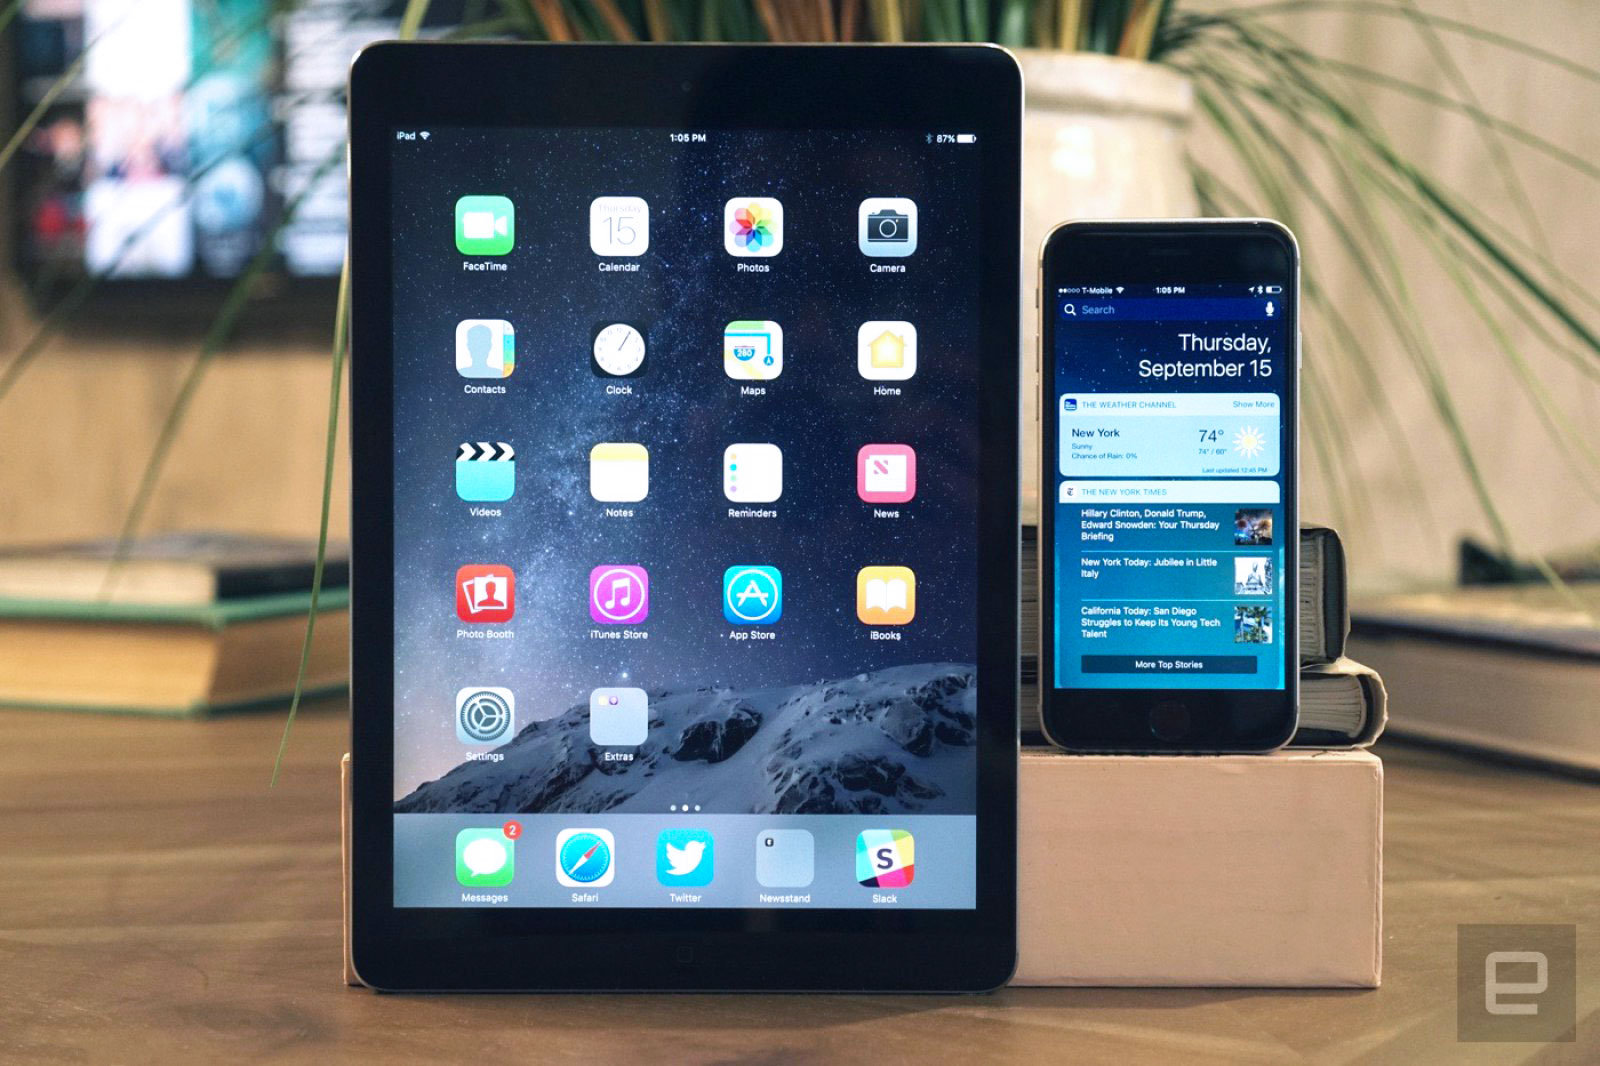 Look at these 10 Secret iPhone Tips and Tricks in iOS 10